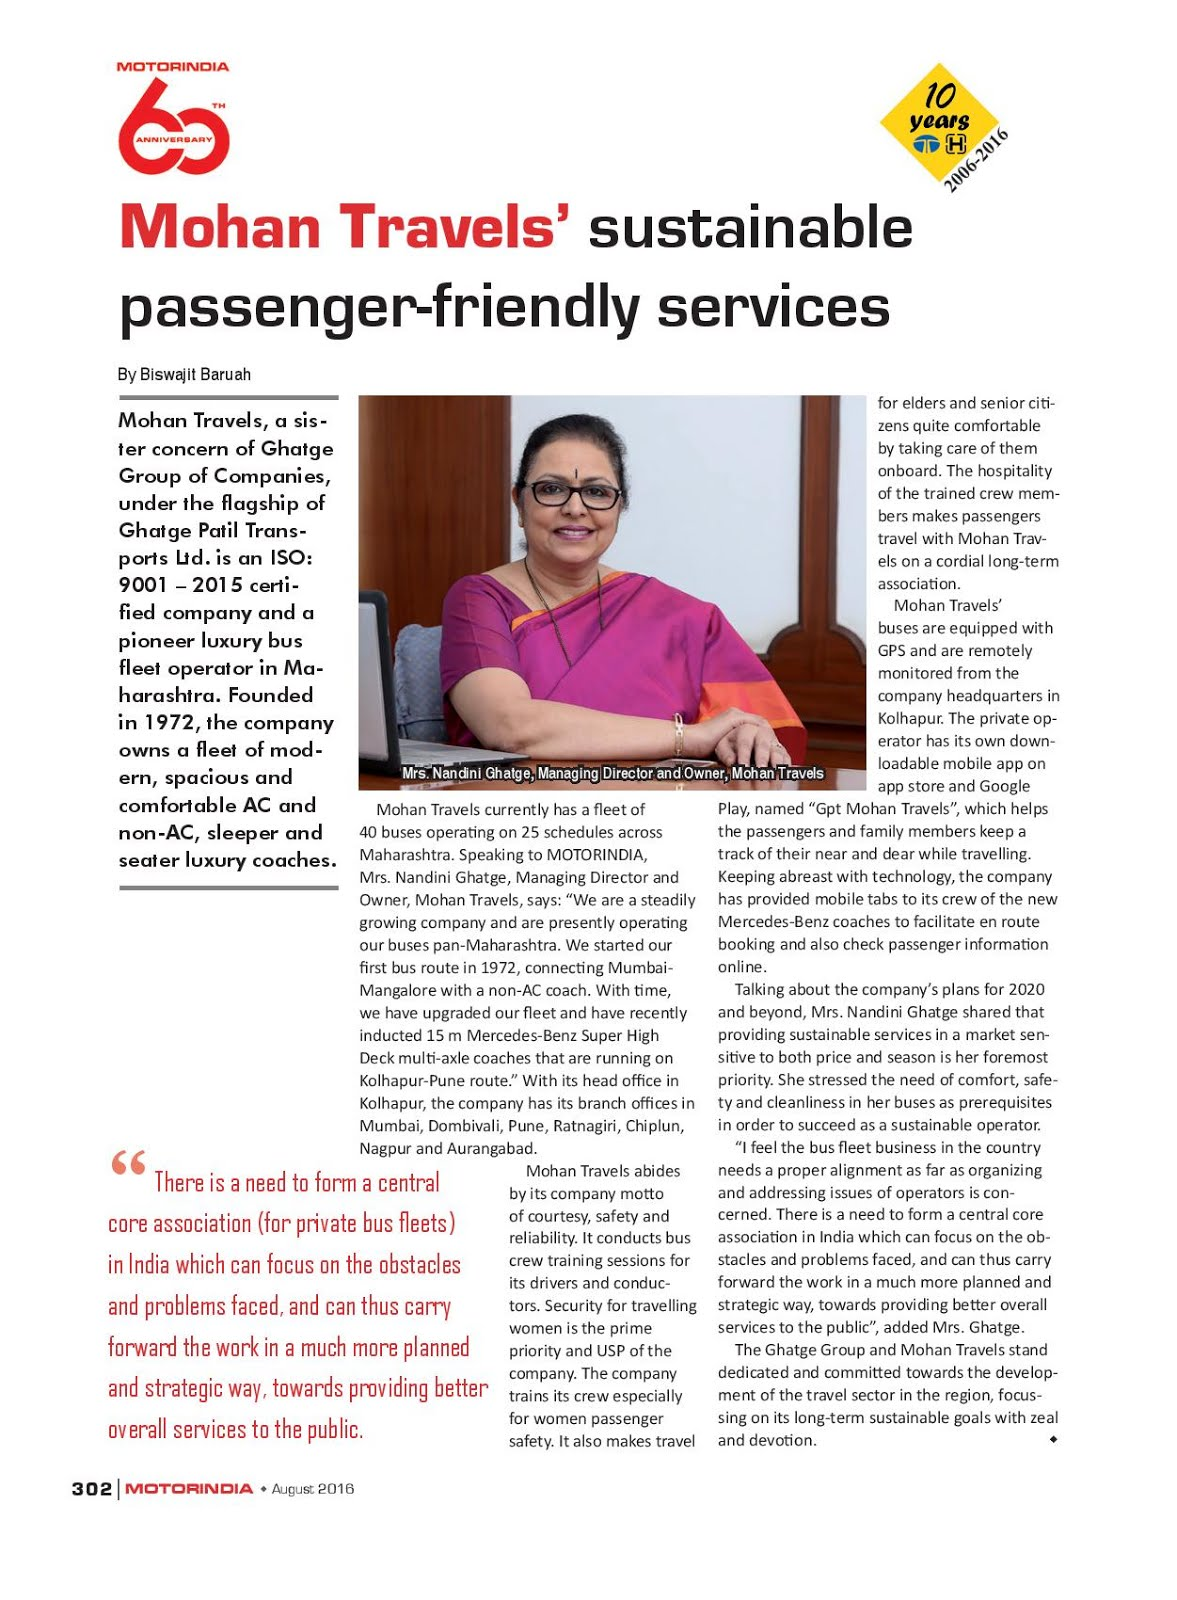 MOTOR INDIA ARTICLE 6 : GHATGE PATIL TRANSPORTS - 2016 ANNIVERSARY EDITION